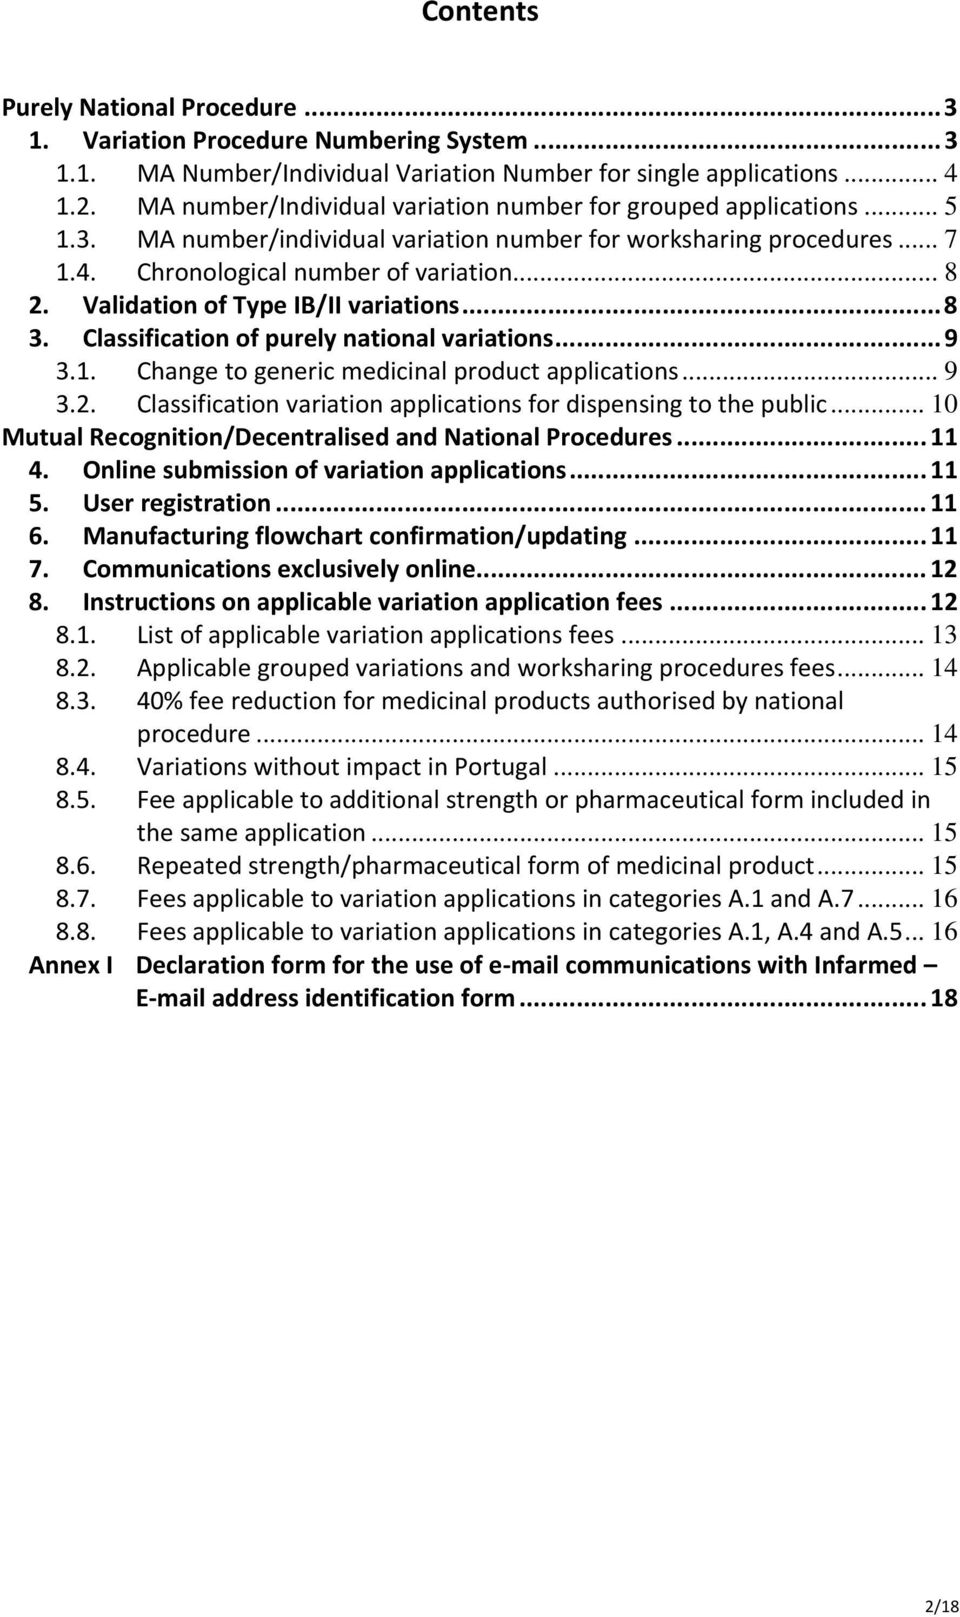 Validation of Type IB/II variations...8 3. Classification of purely national variations...9 3.1. Change to generic medicinal product applications... 9 3.2.